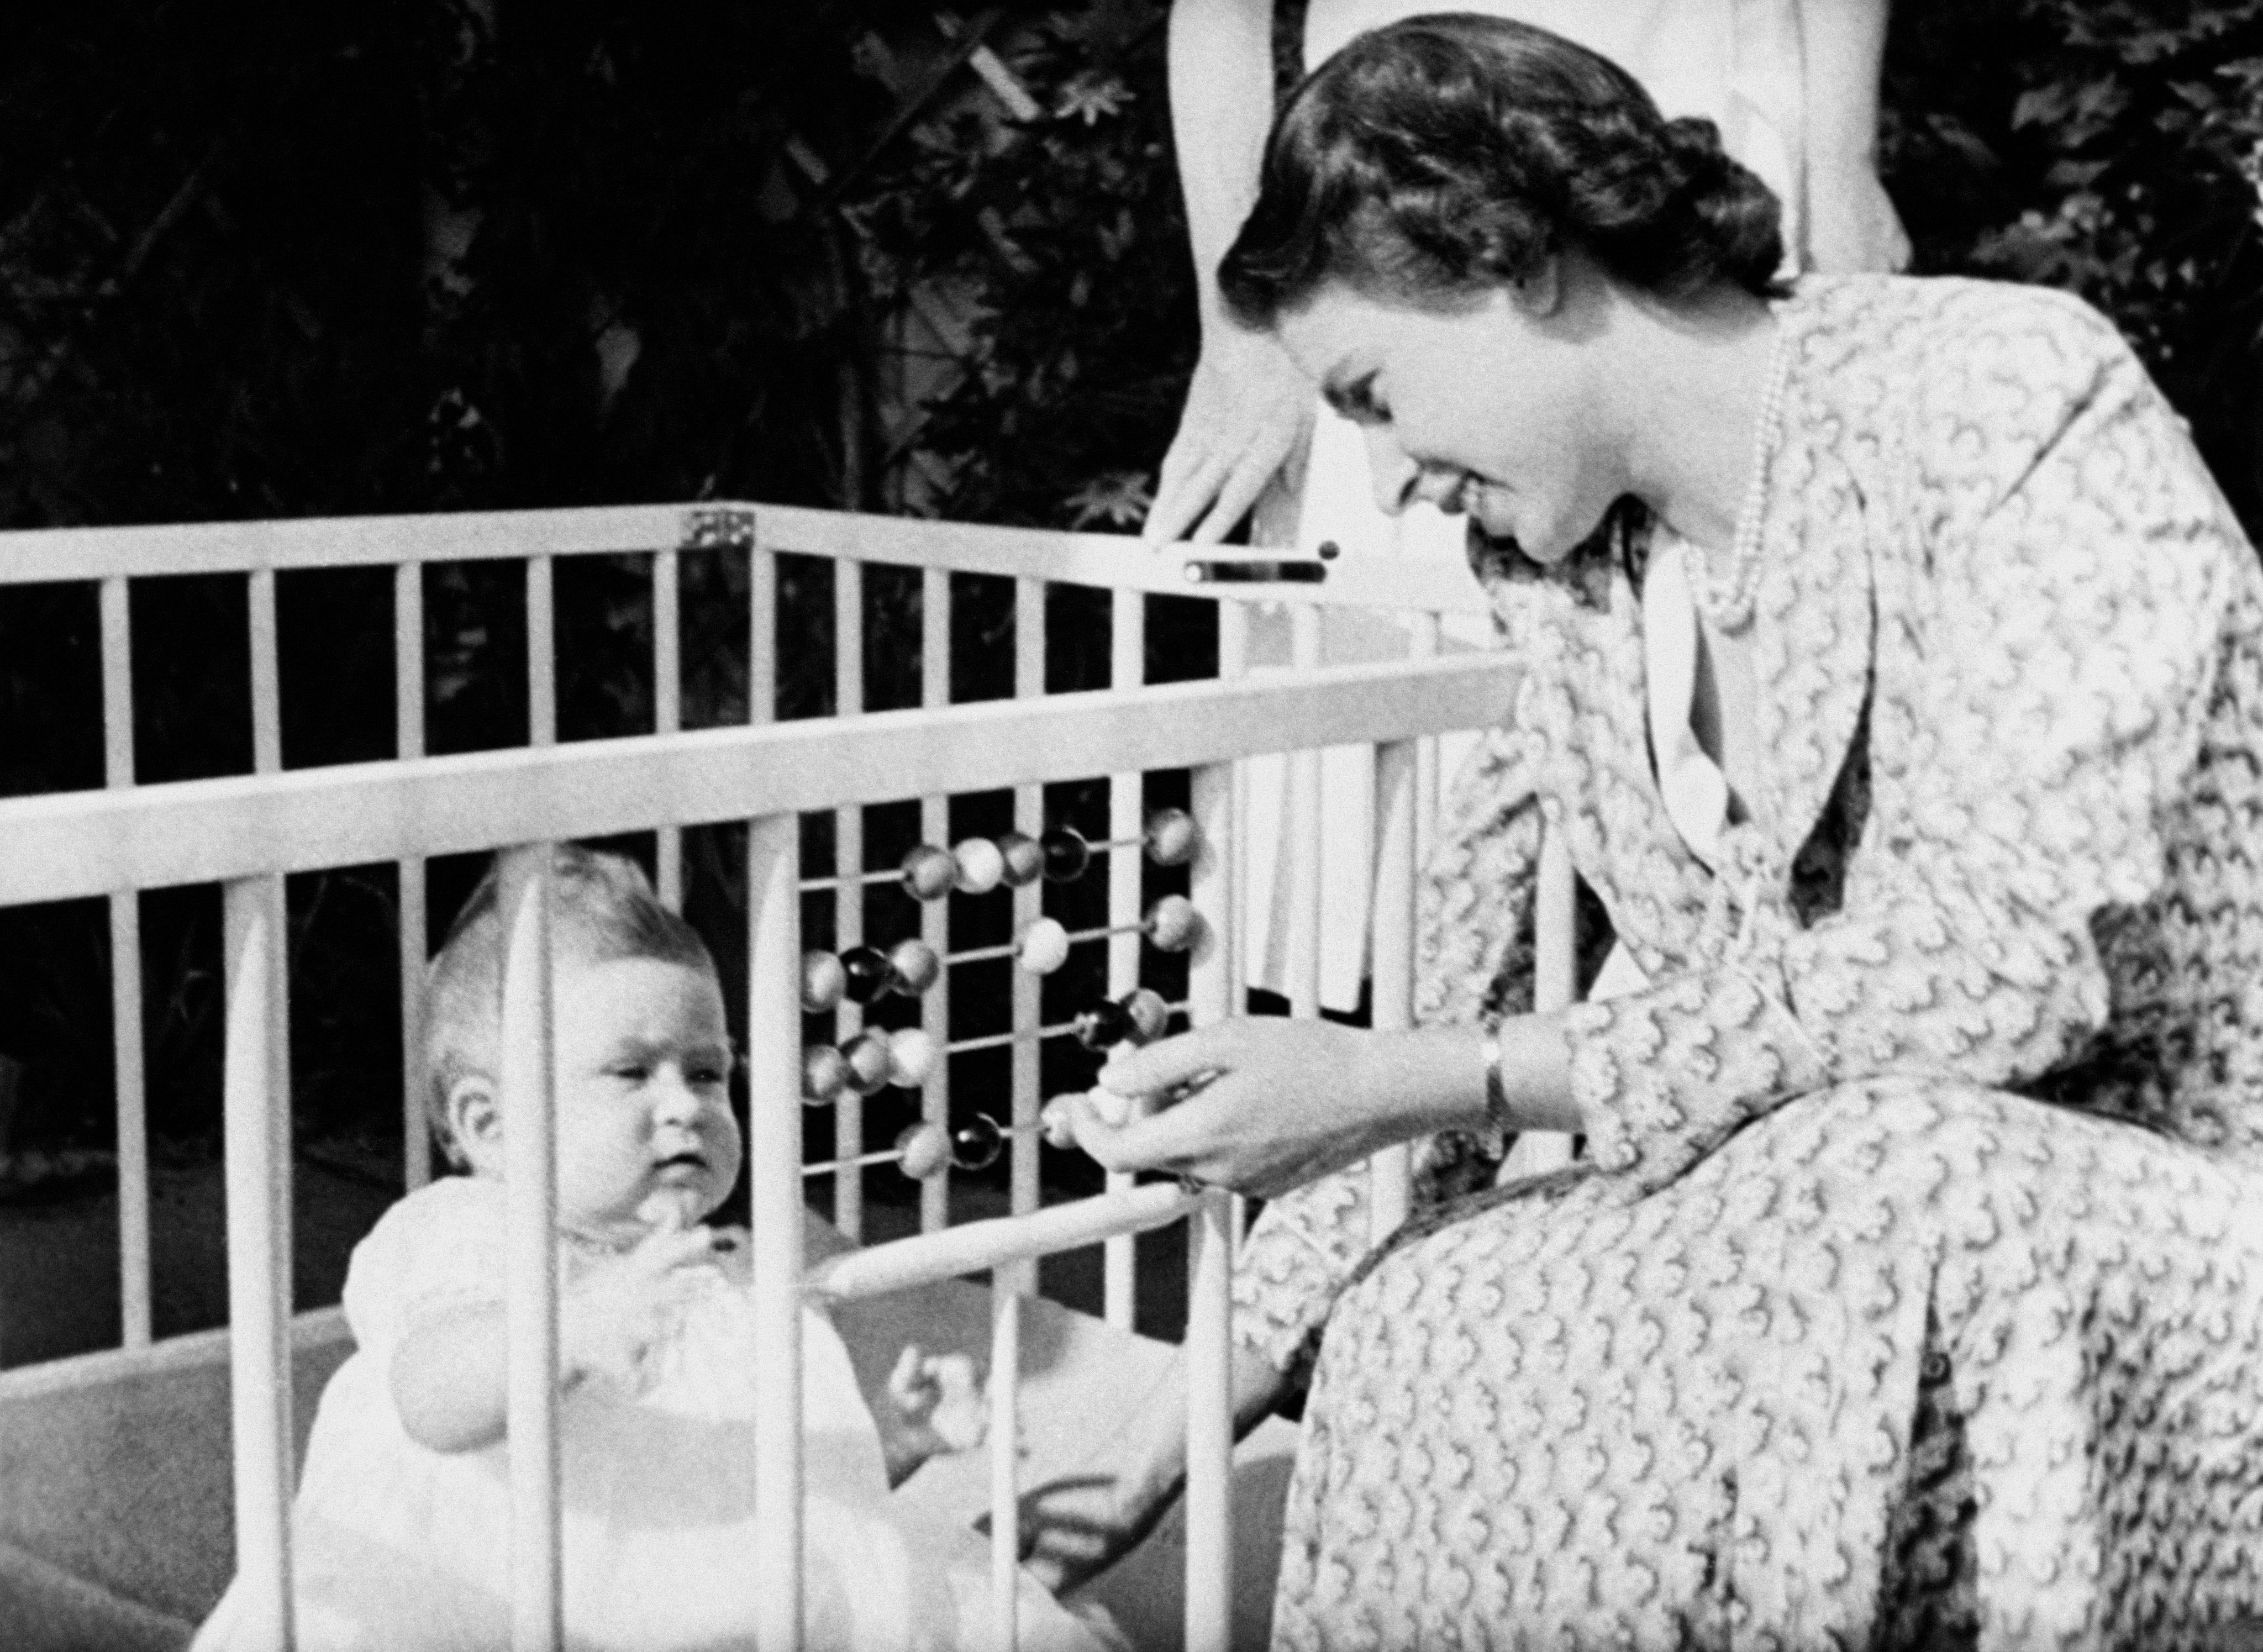 The queen and the prince of wales as a baby